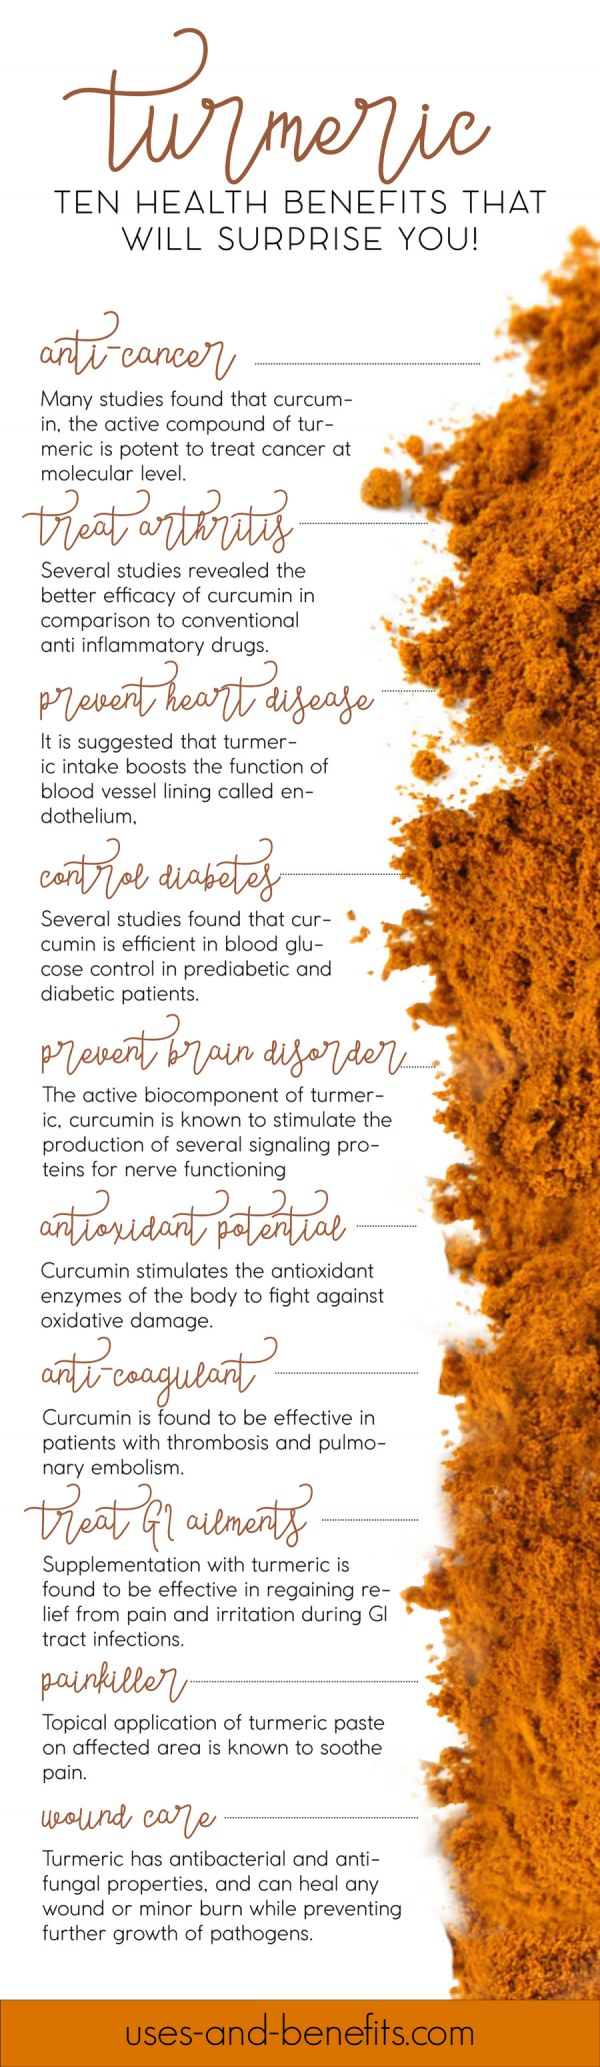 what-is-turmeric-good-for-infographic